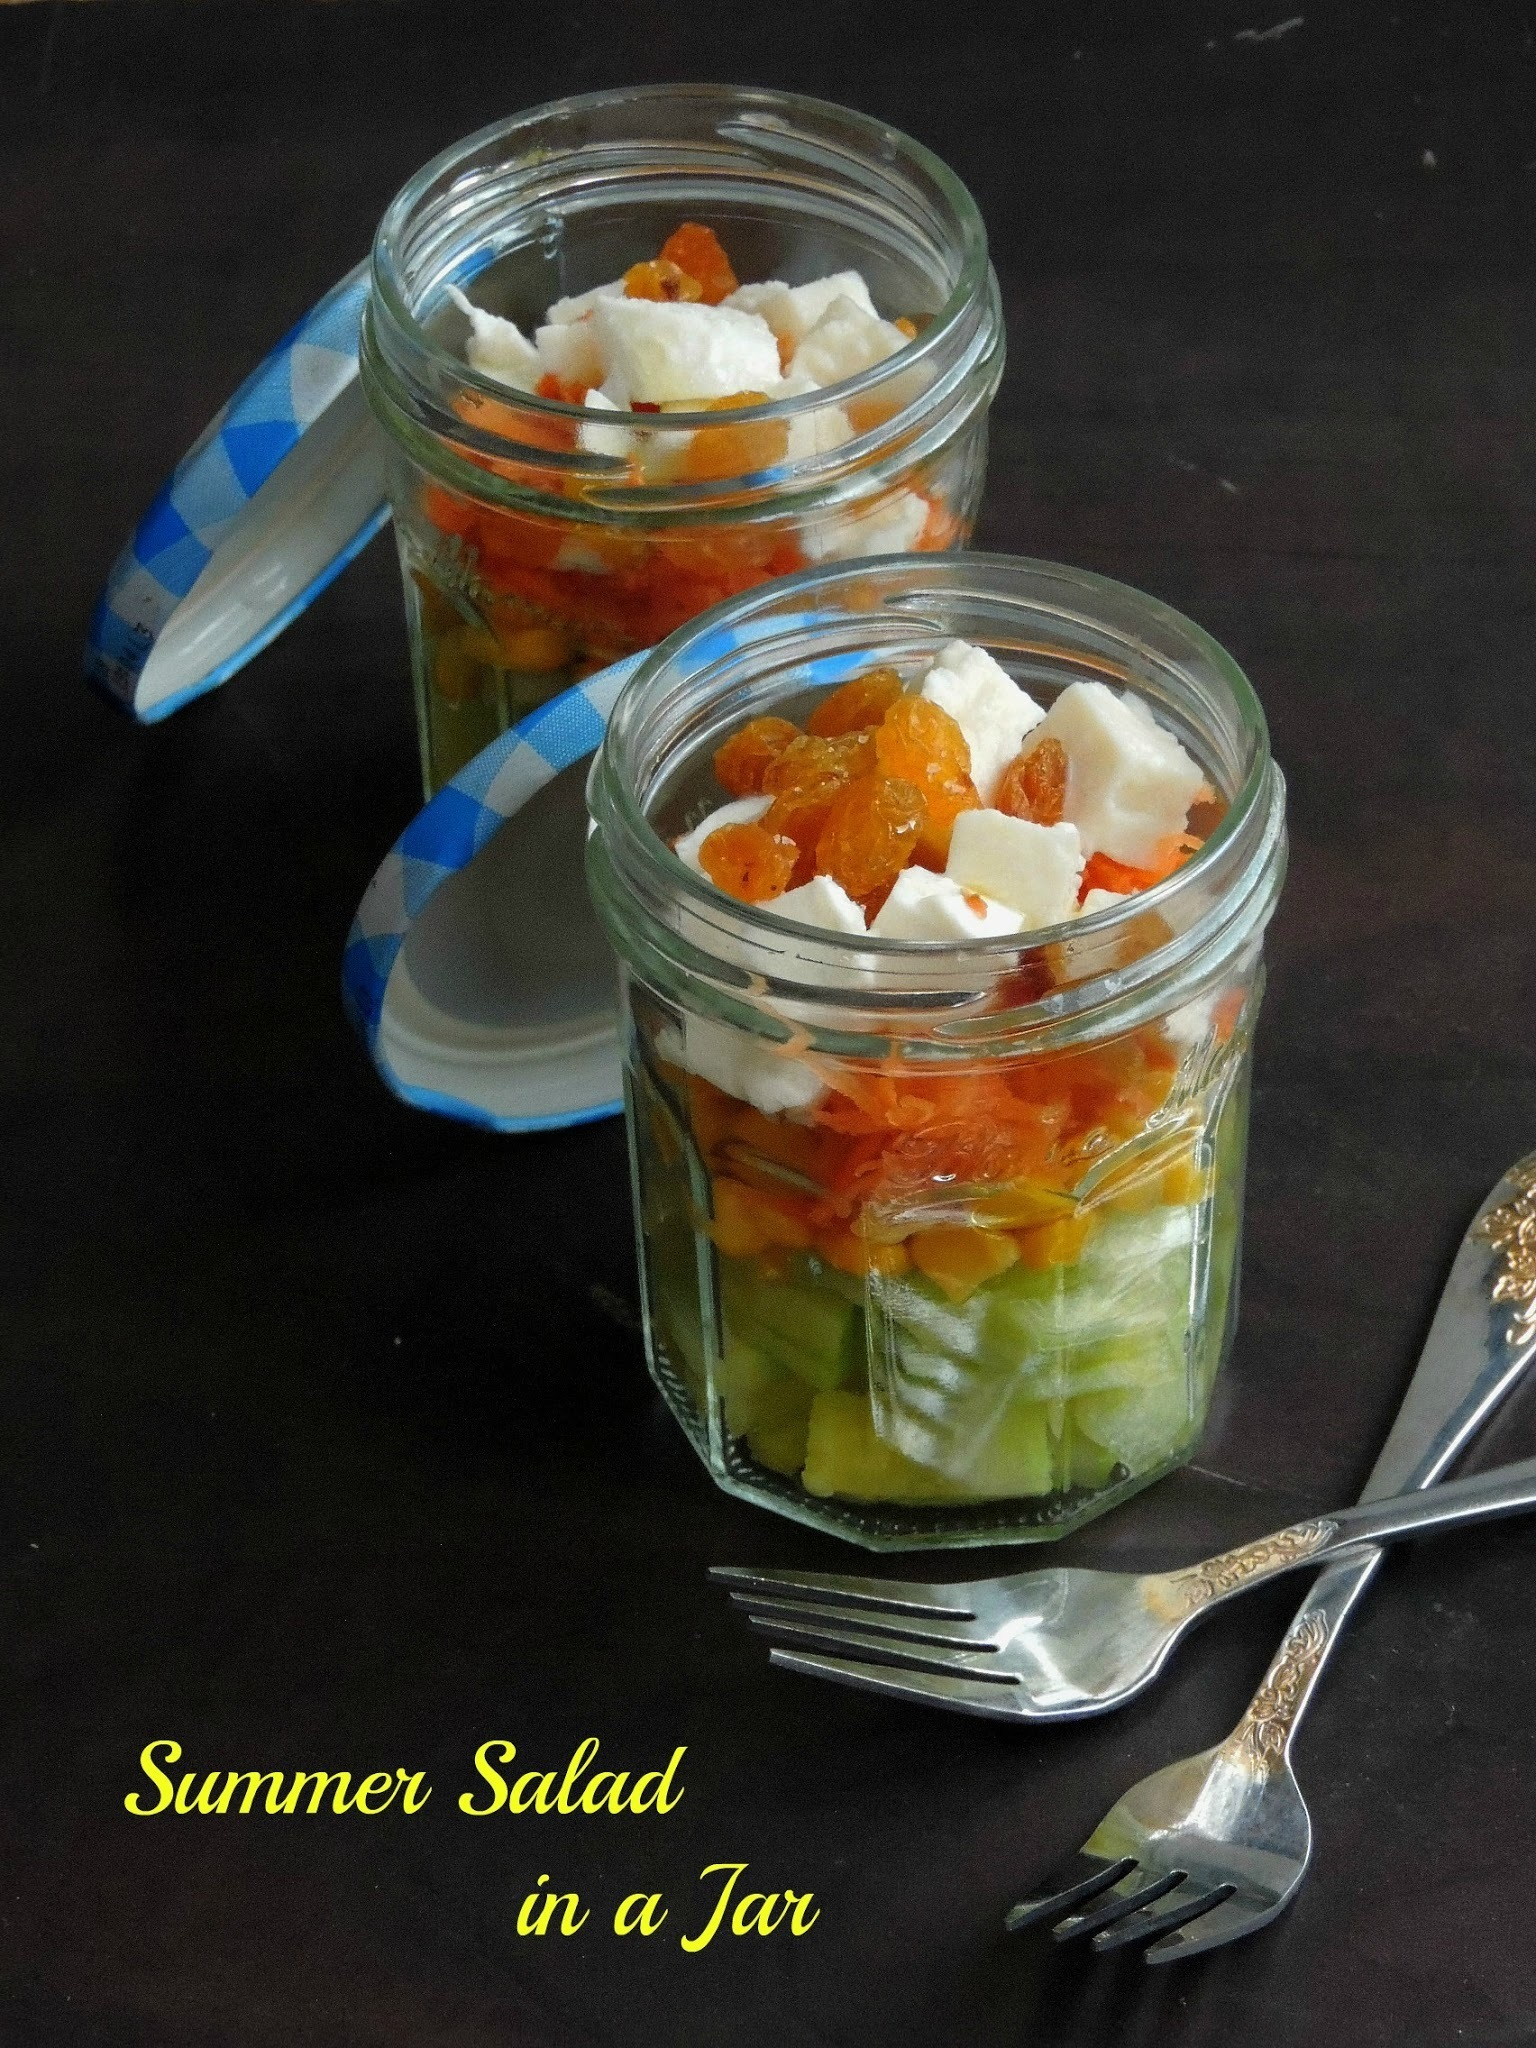 Summer Salad in a Jar/Mixed Vegetables & Mozzarella Salad